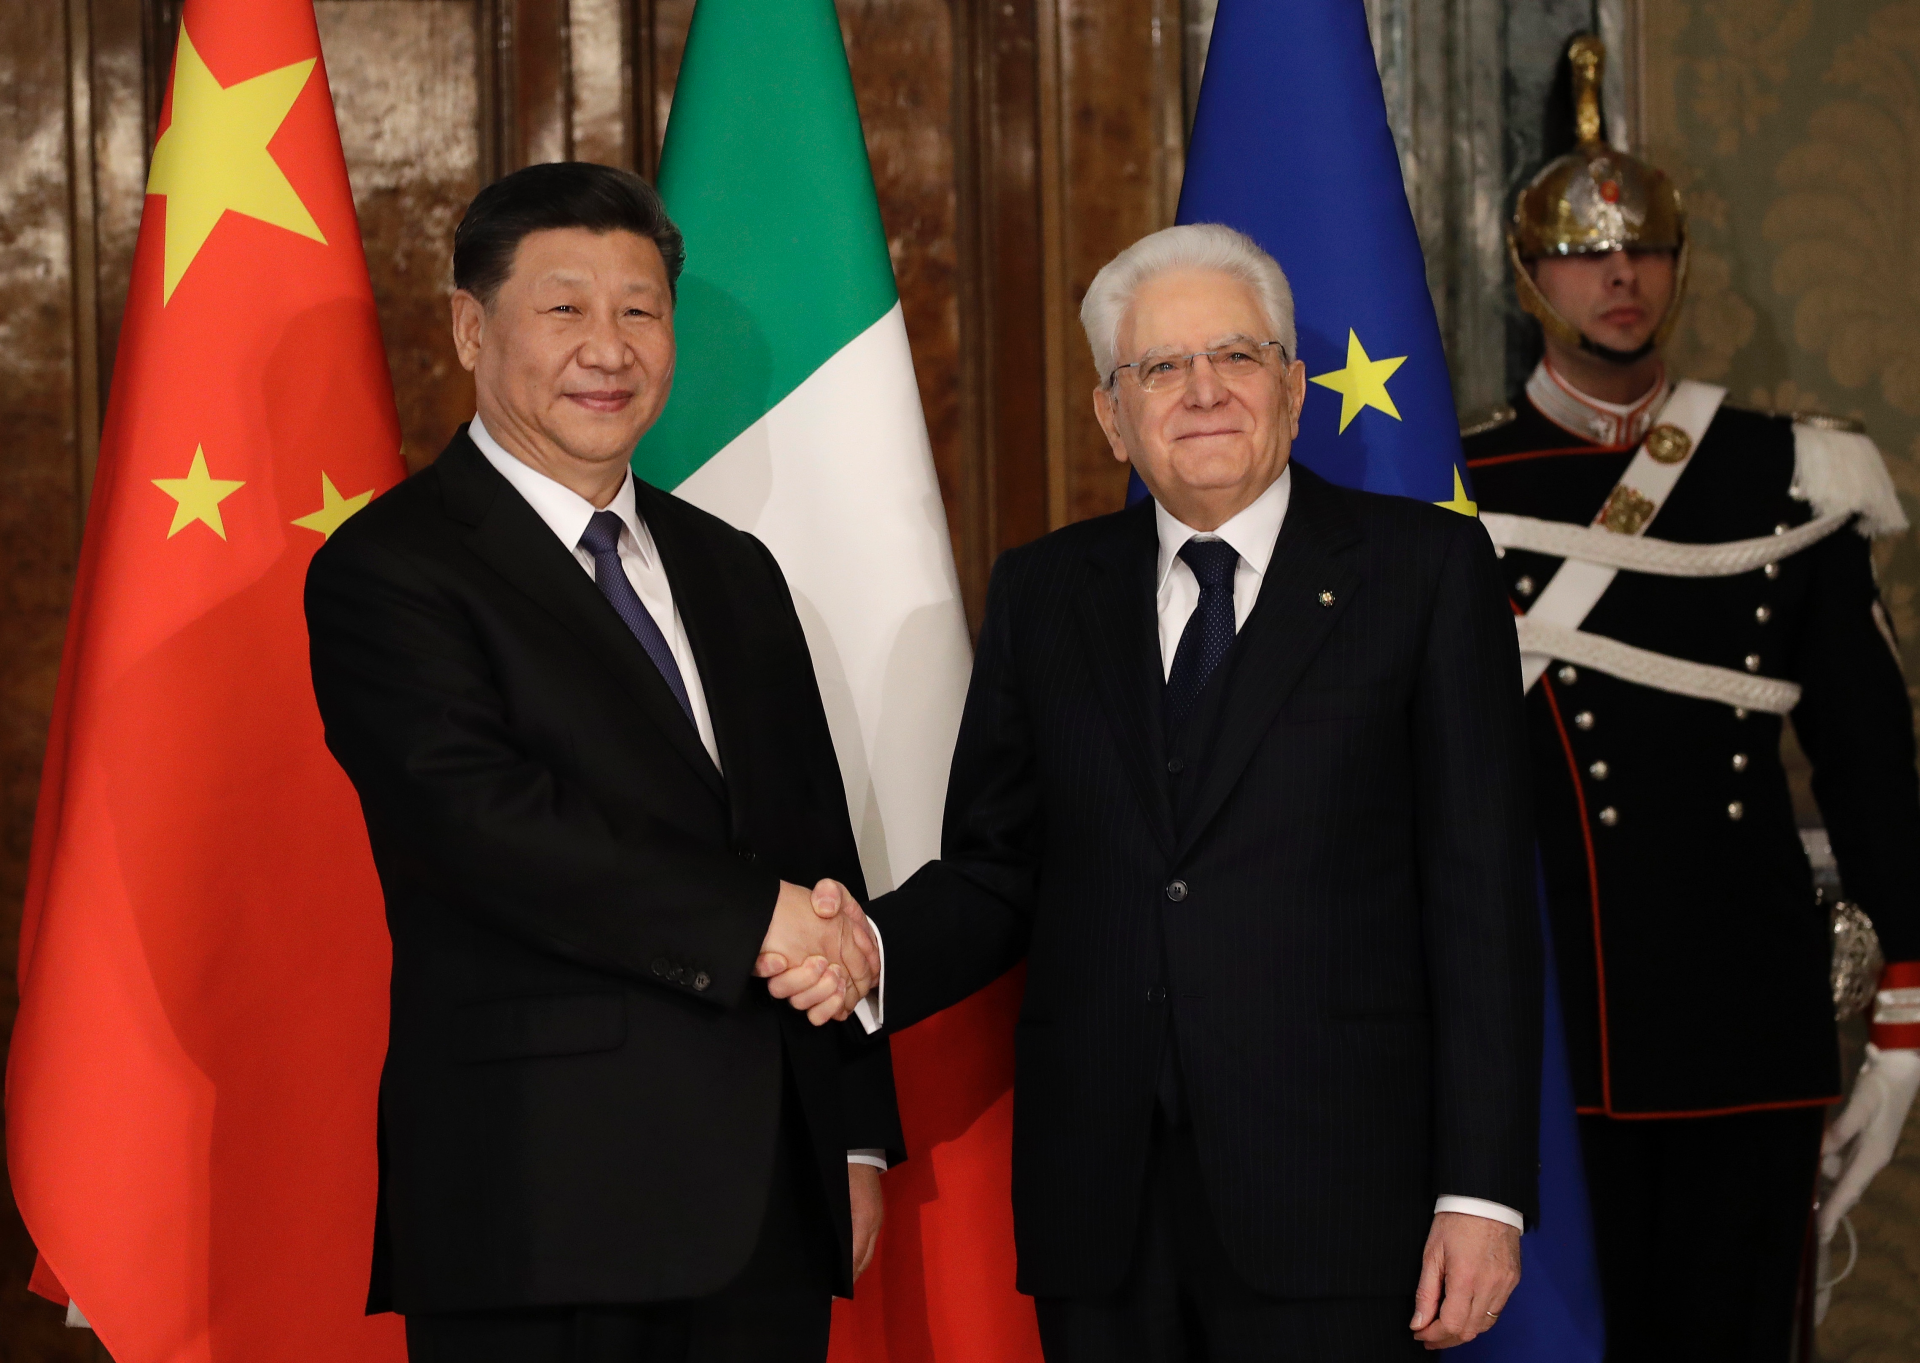 Italian move to join China's Belt and Road coup for Beijing